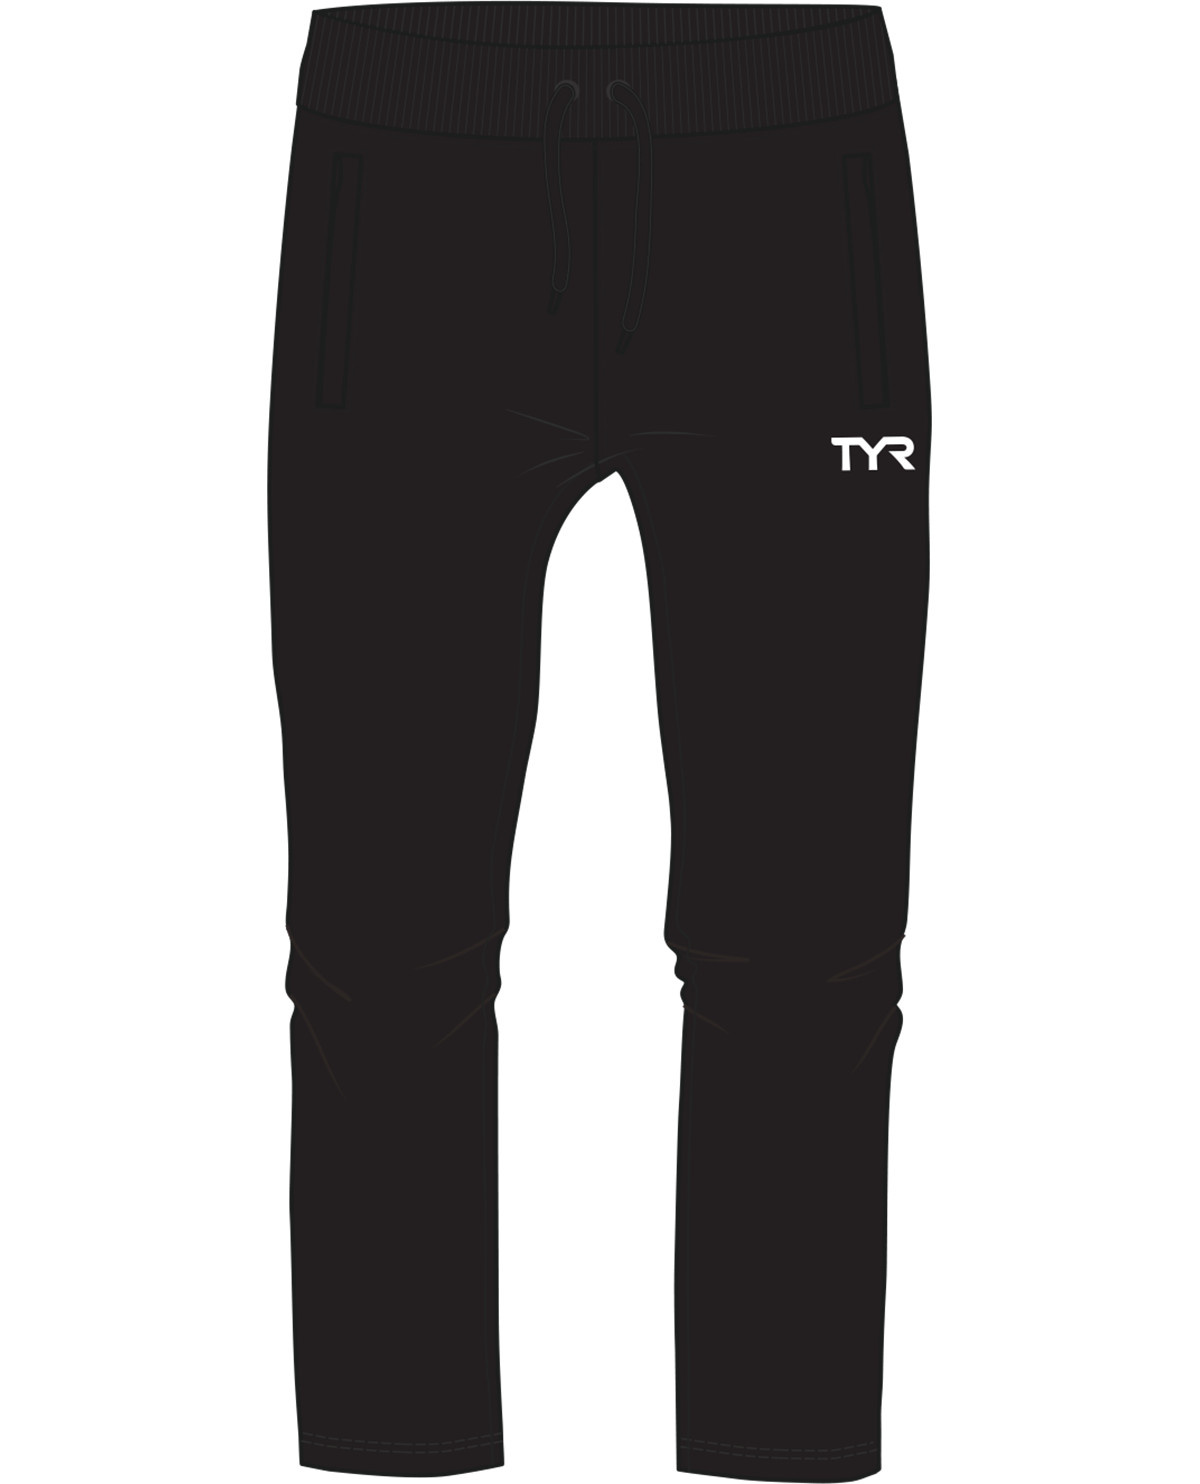 TYR MSC Male Warm Up Pant